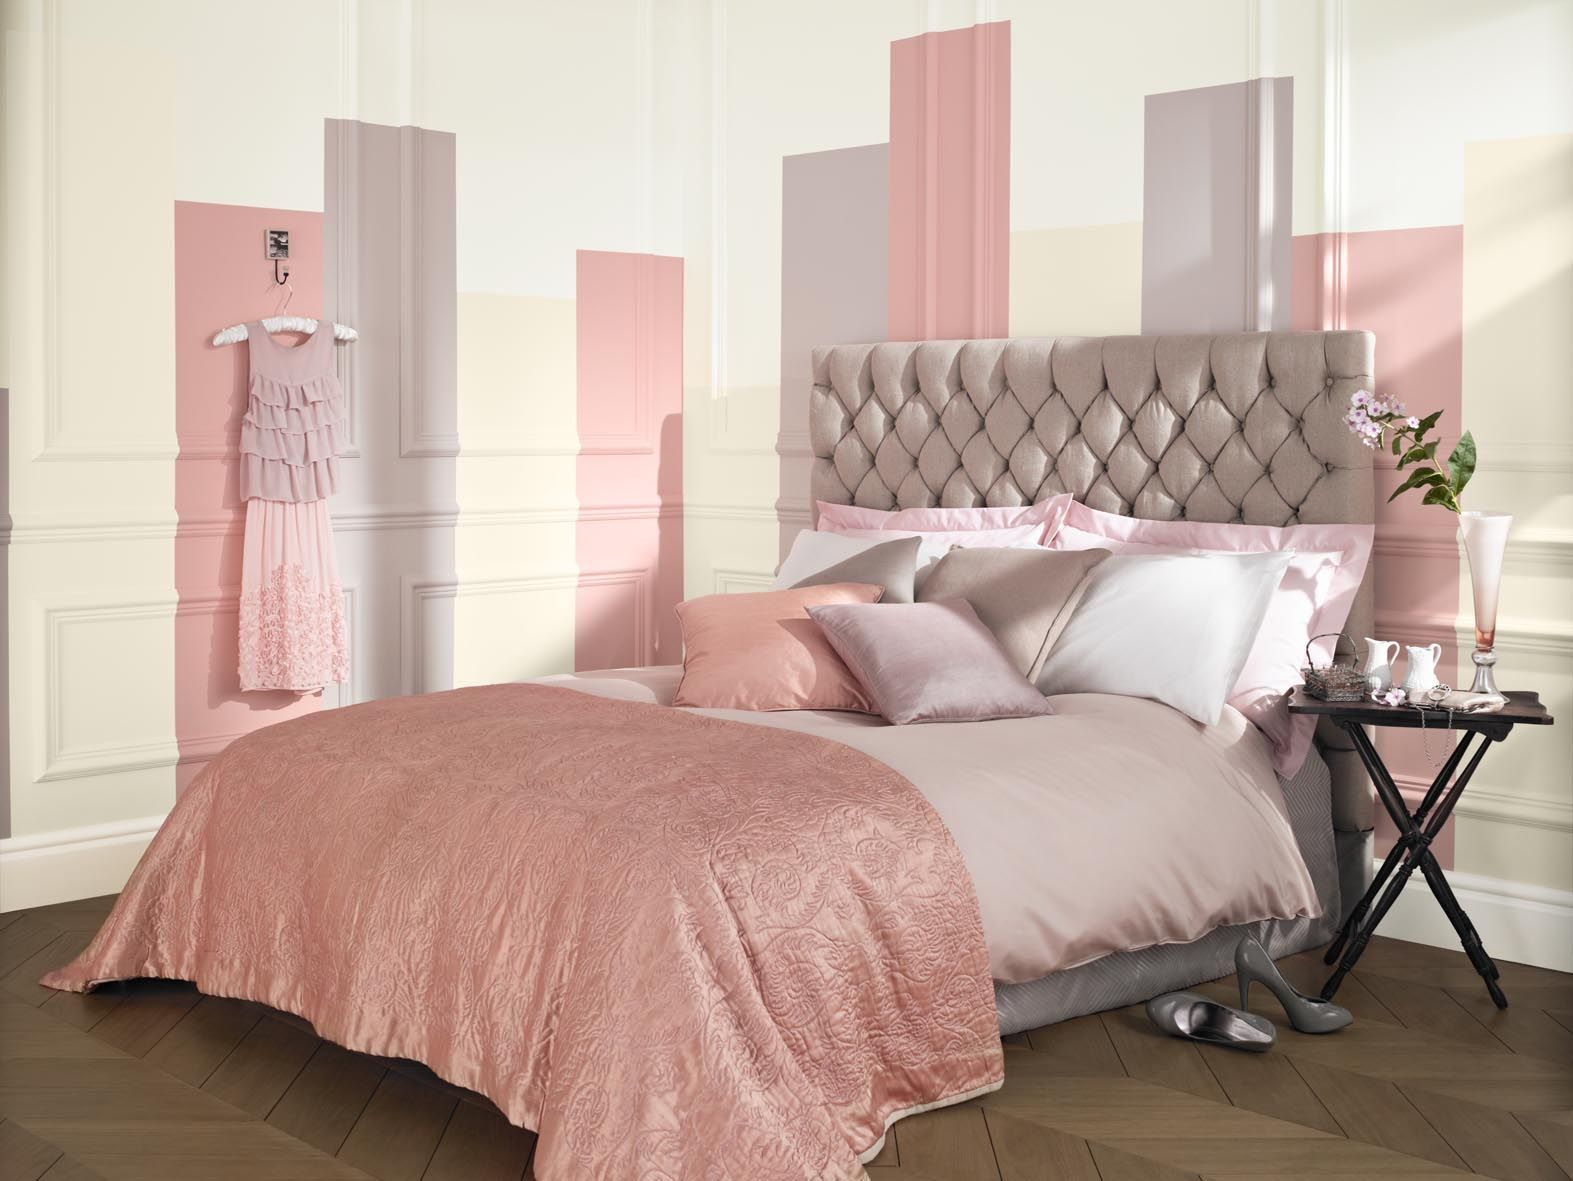 Feminine Pink Natural Bedroom Painted With Crown Matt Emulsion In Honey Fever Pale Hare Taupe And Snowdrop Cream